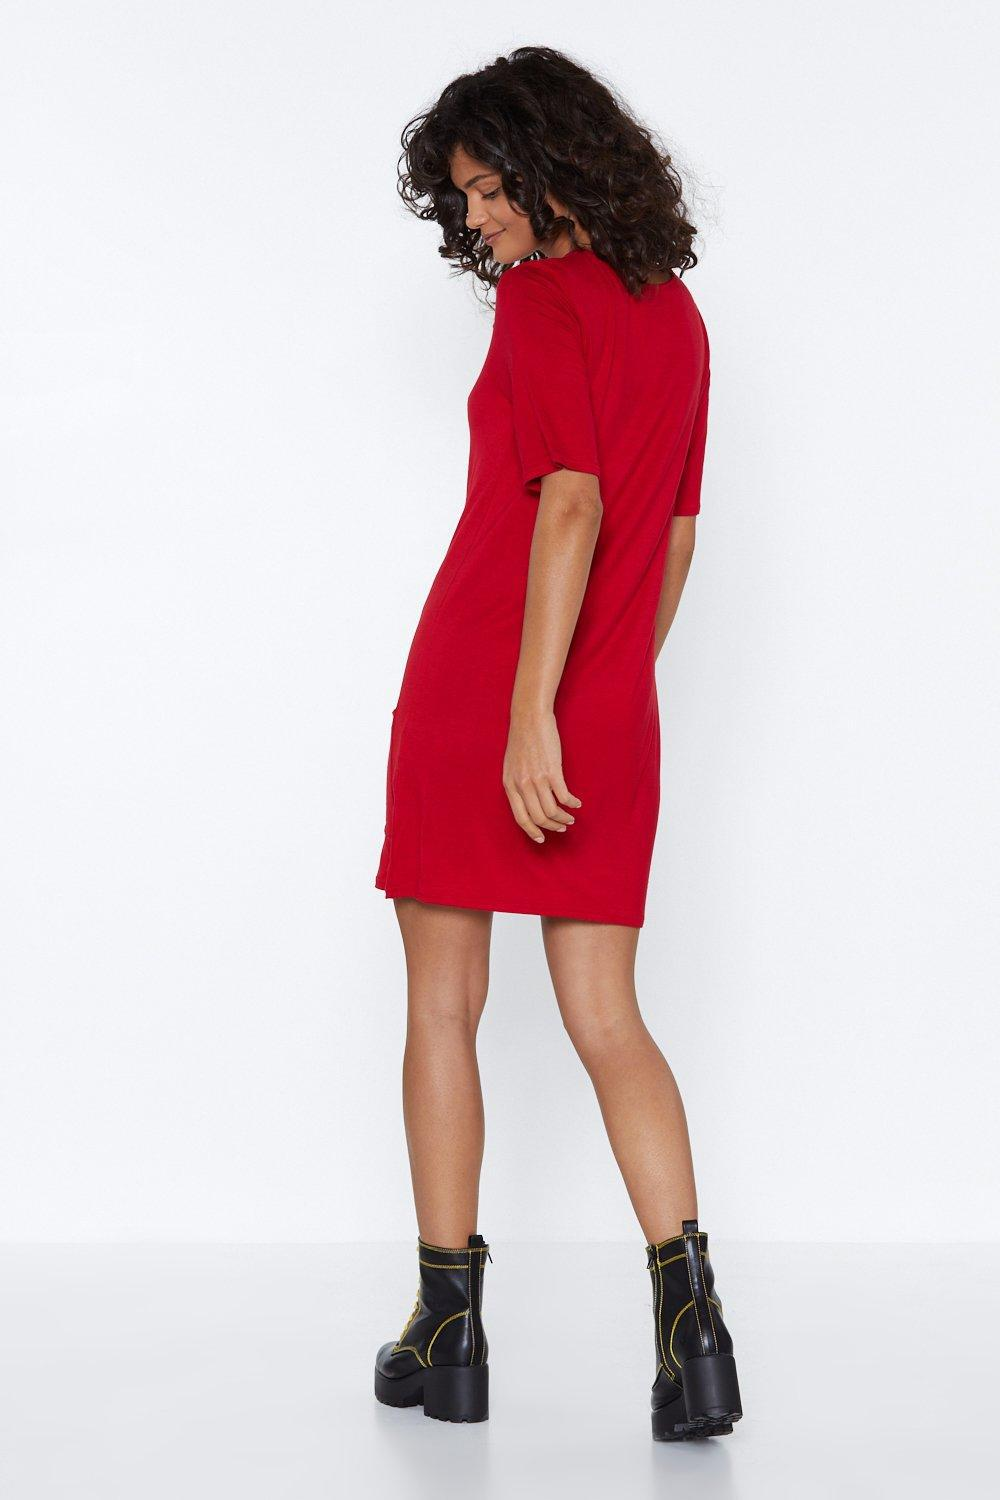 28a5aef9e416a Nasty Gal - Red Keep It Between You And Tee Dress - Lyst. View fullscreen